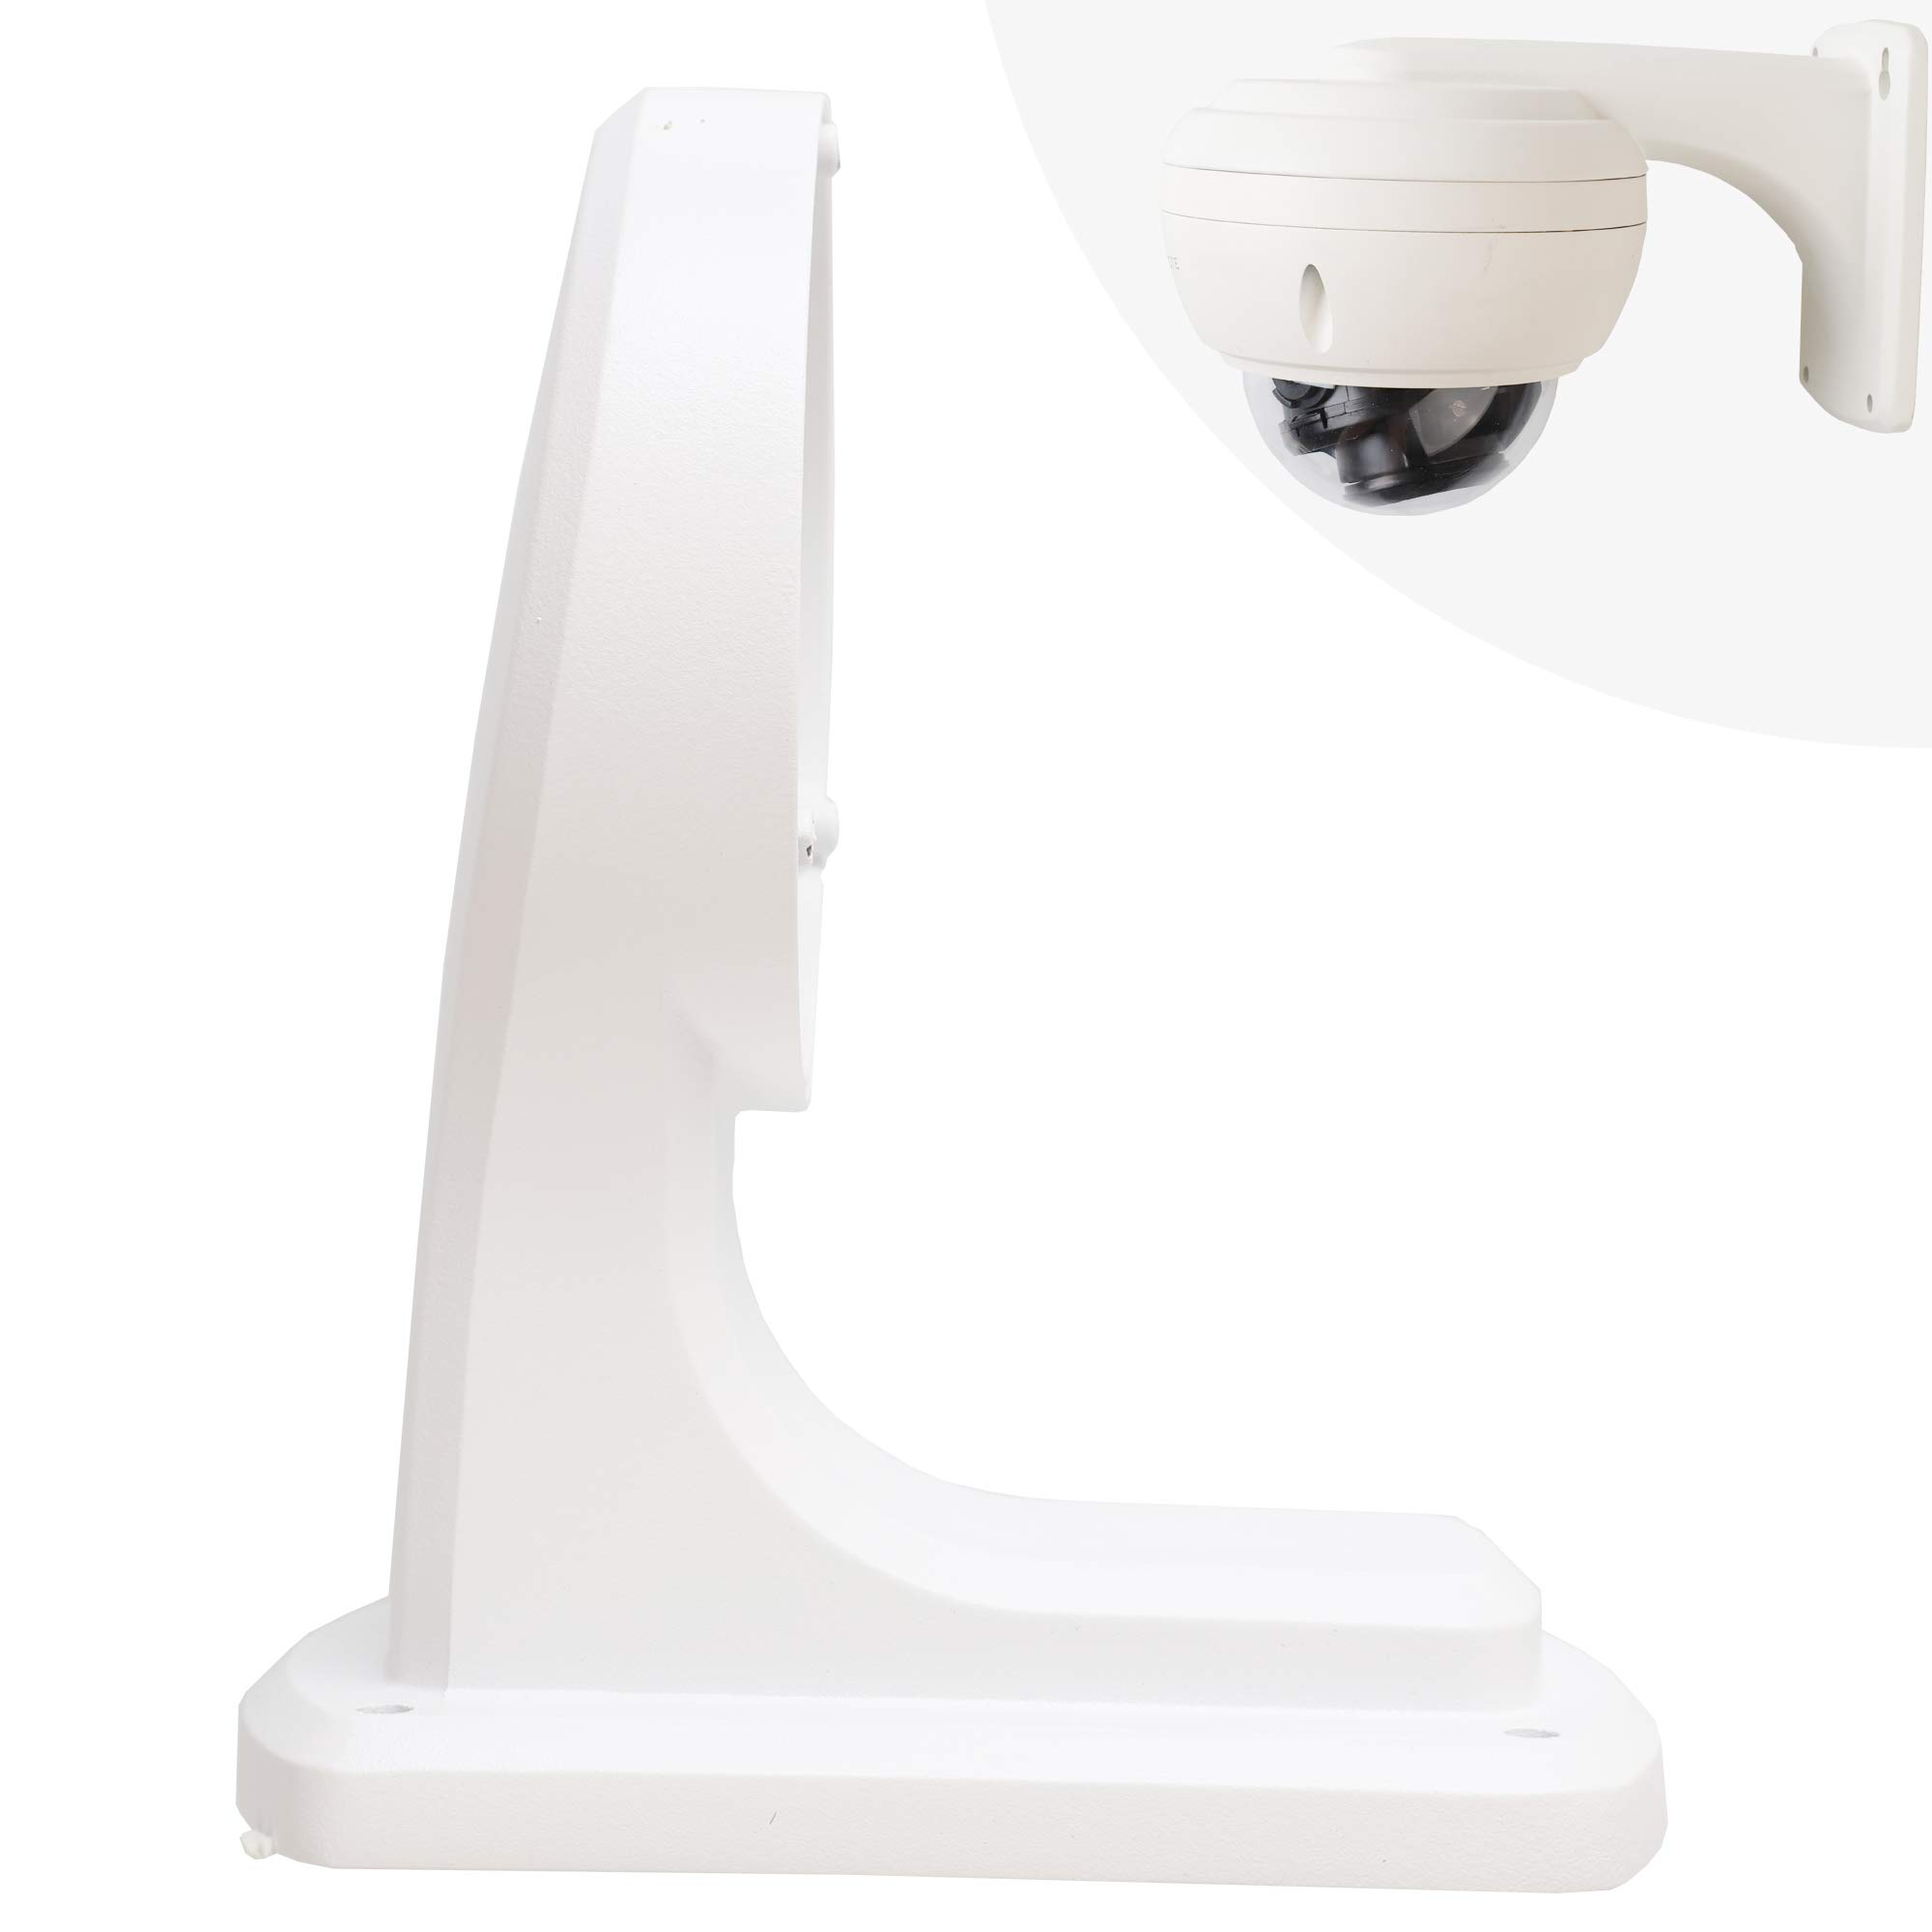 Housing & Mounting Metal Brackets for ONWOTE Dome PoE IP Security Cameras with Audio by ONWOTE